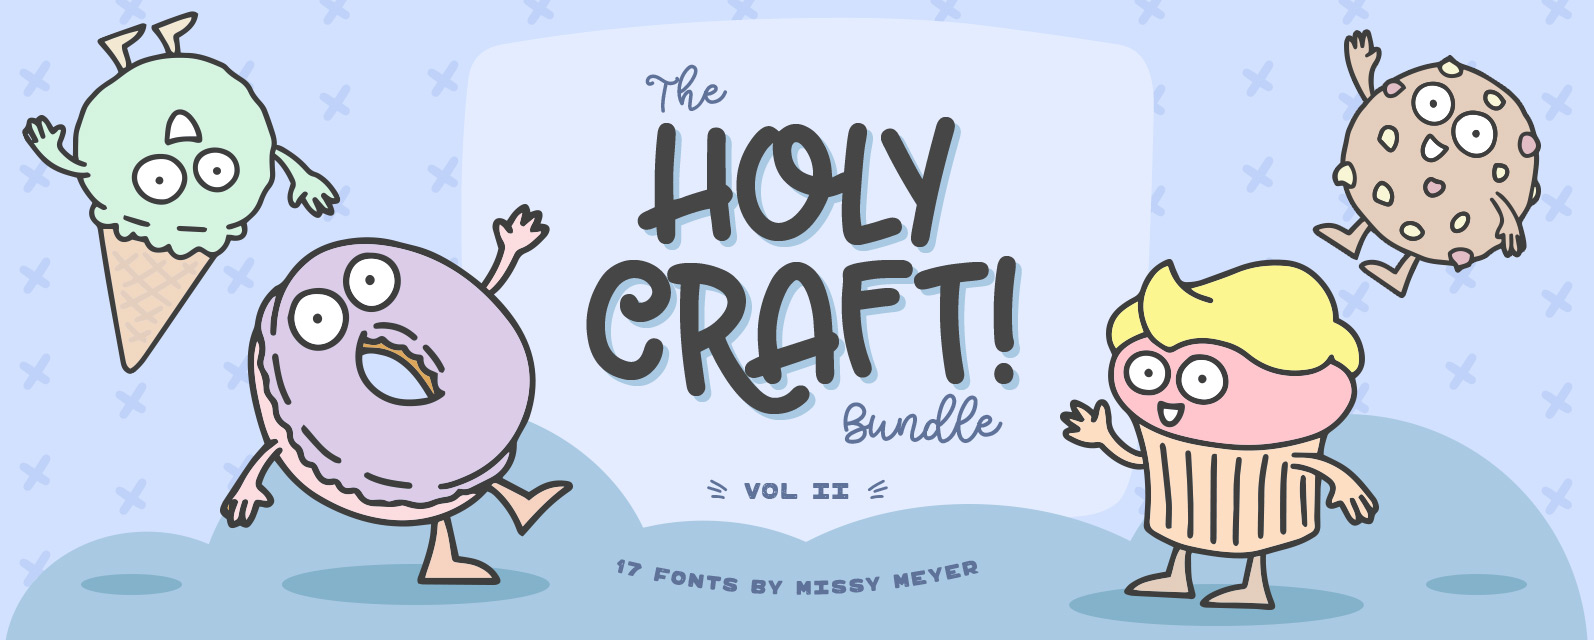 The Holy Craft Bundle Vol II Cover